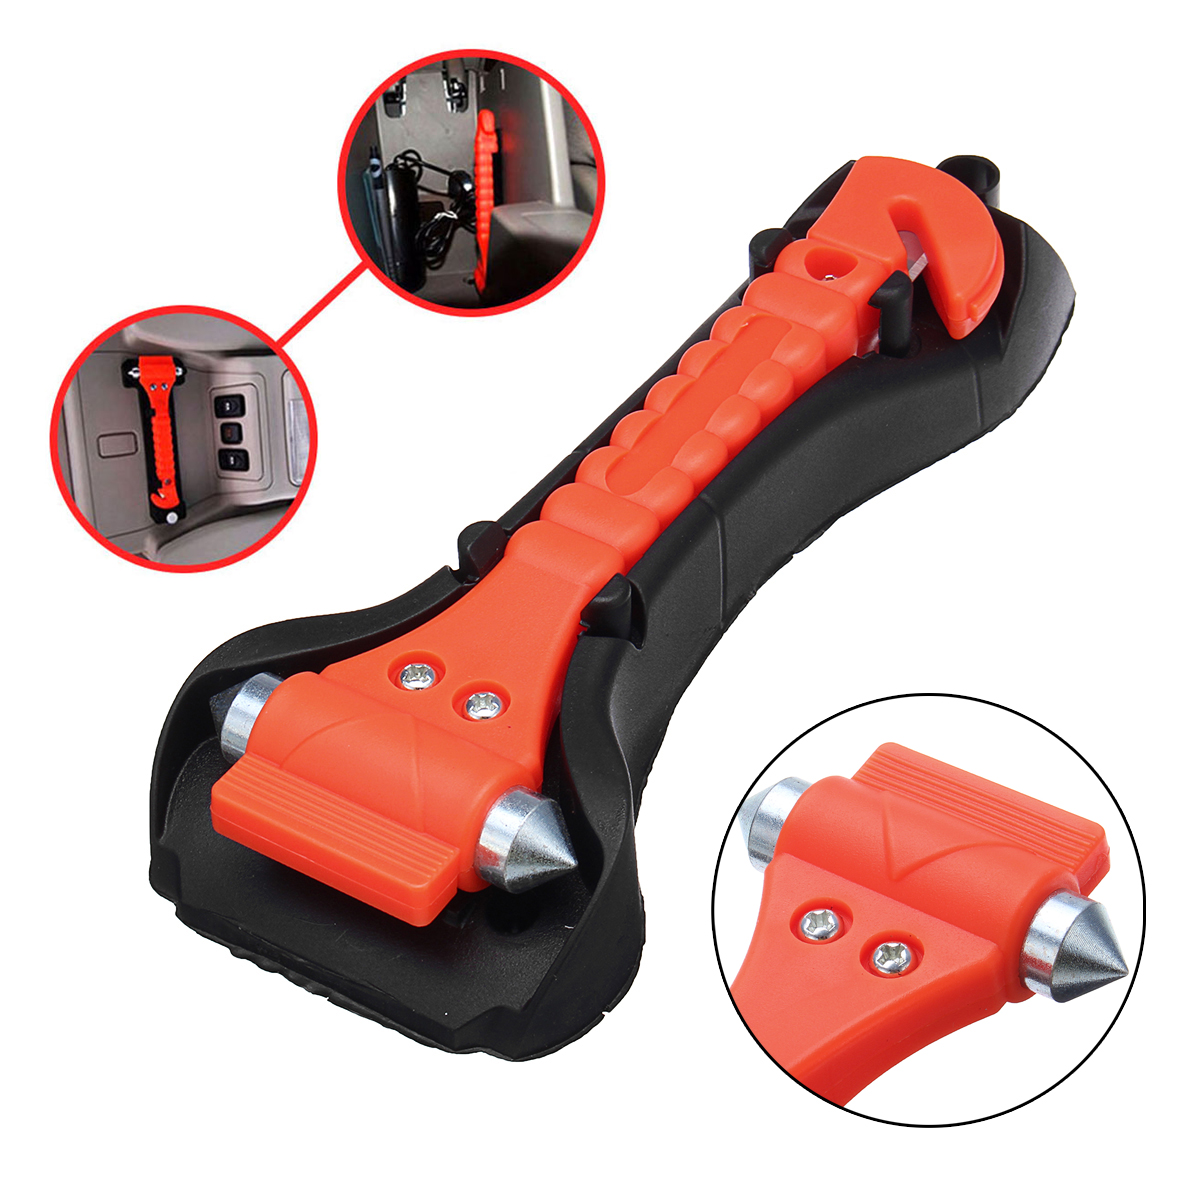 Stupendous Car Safety Hammer Escape Emergency Hammer Seat Belt Cutter Window Glass Breaker Car Rescue Tool Ocoug Best Dining Table And Chair Ideas Images Ocougorg